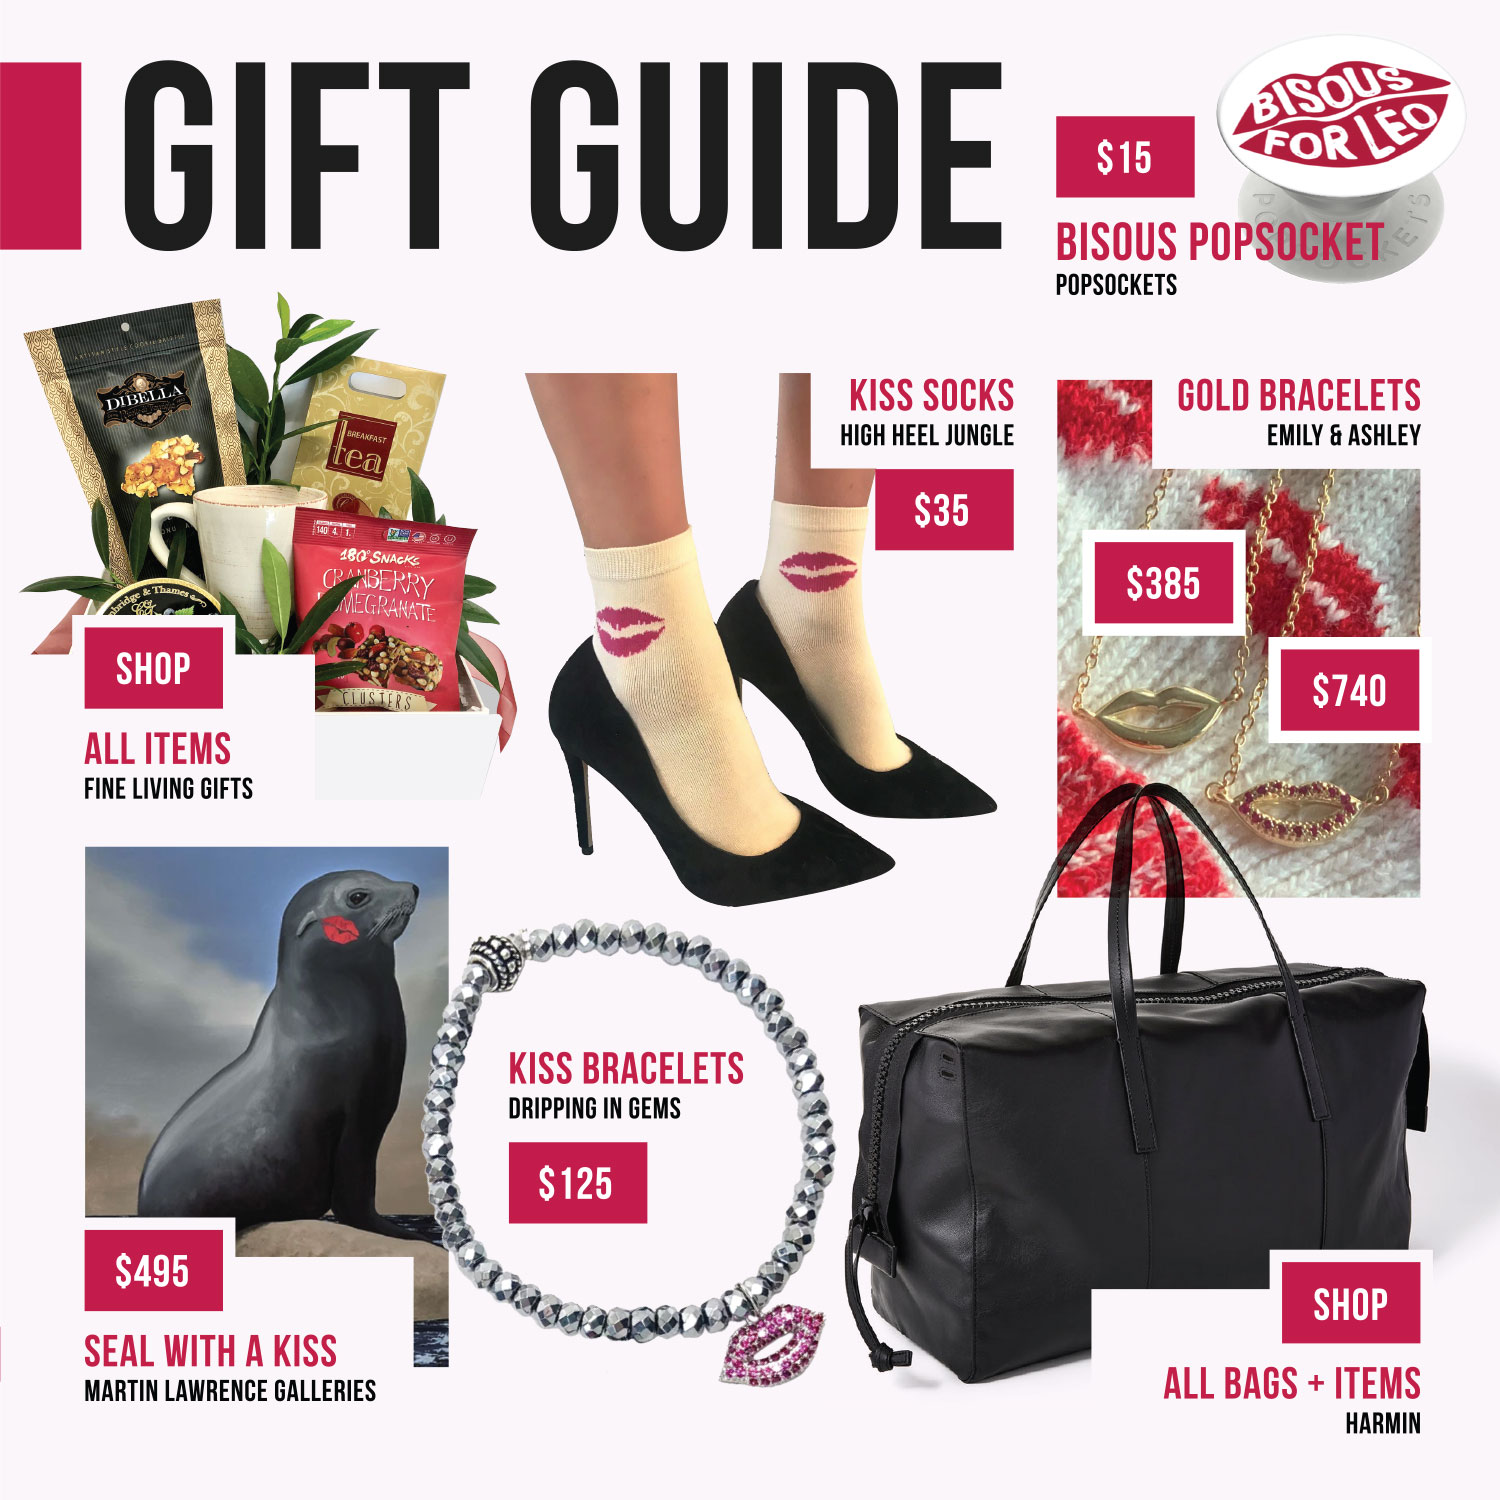 Bisous for Leo Gift Guide